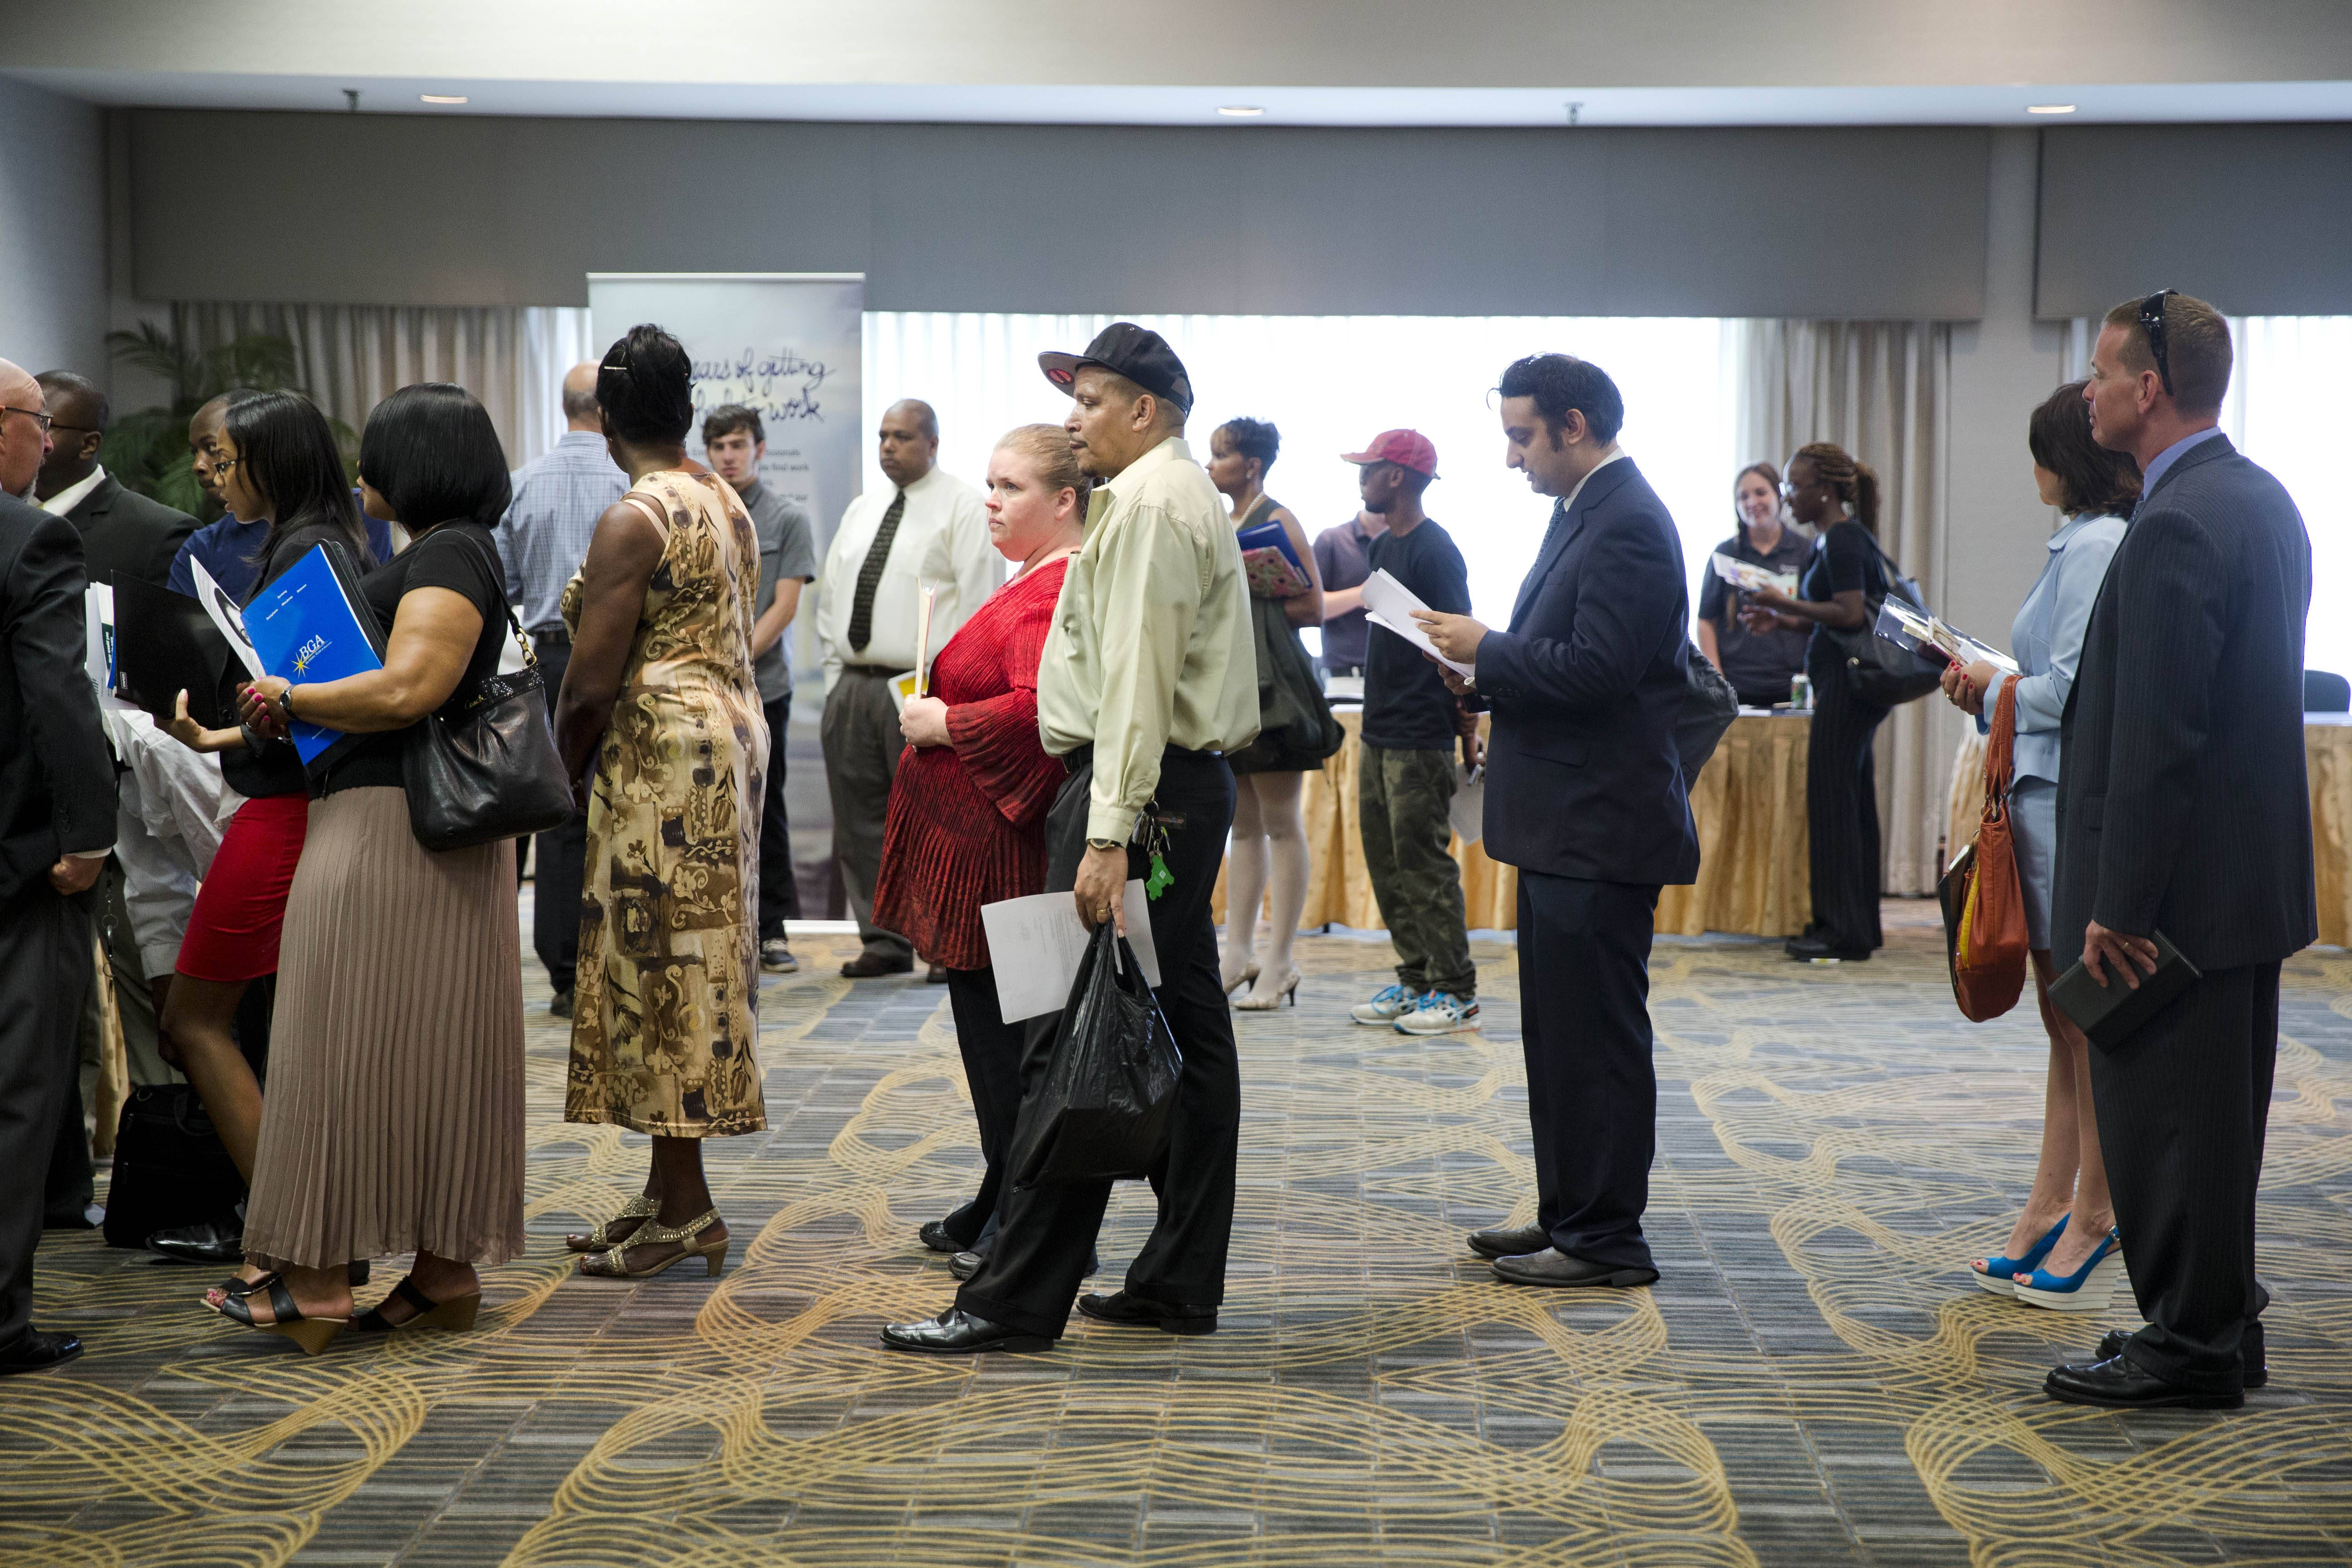 People wait in line to meet with recruiters during a job fair in Philadelphia. Fewer people applied for U.S. unemployment benefits last week, another sign the job market is improving.